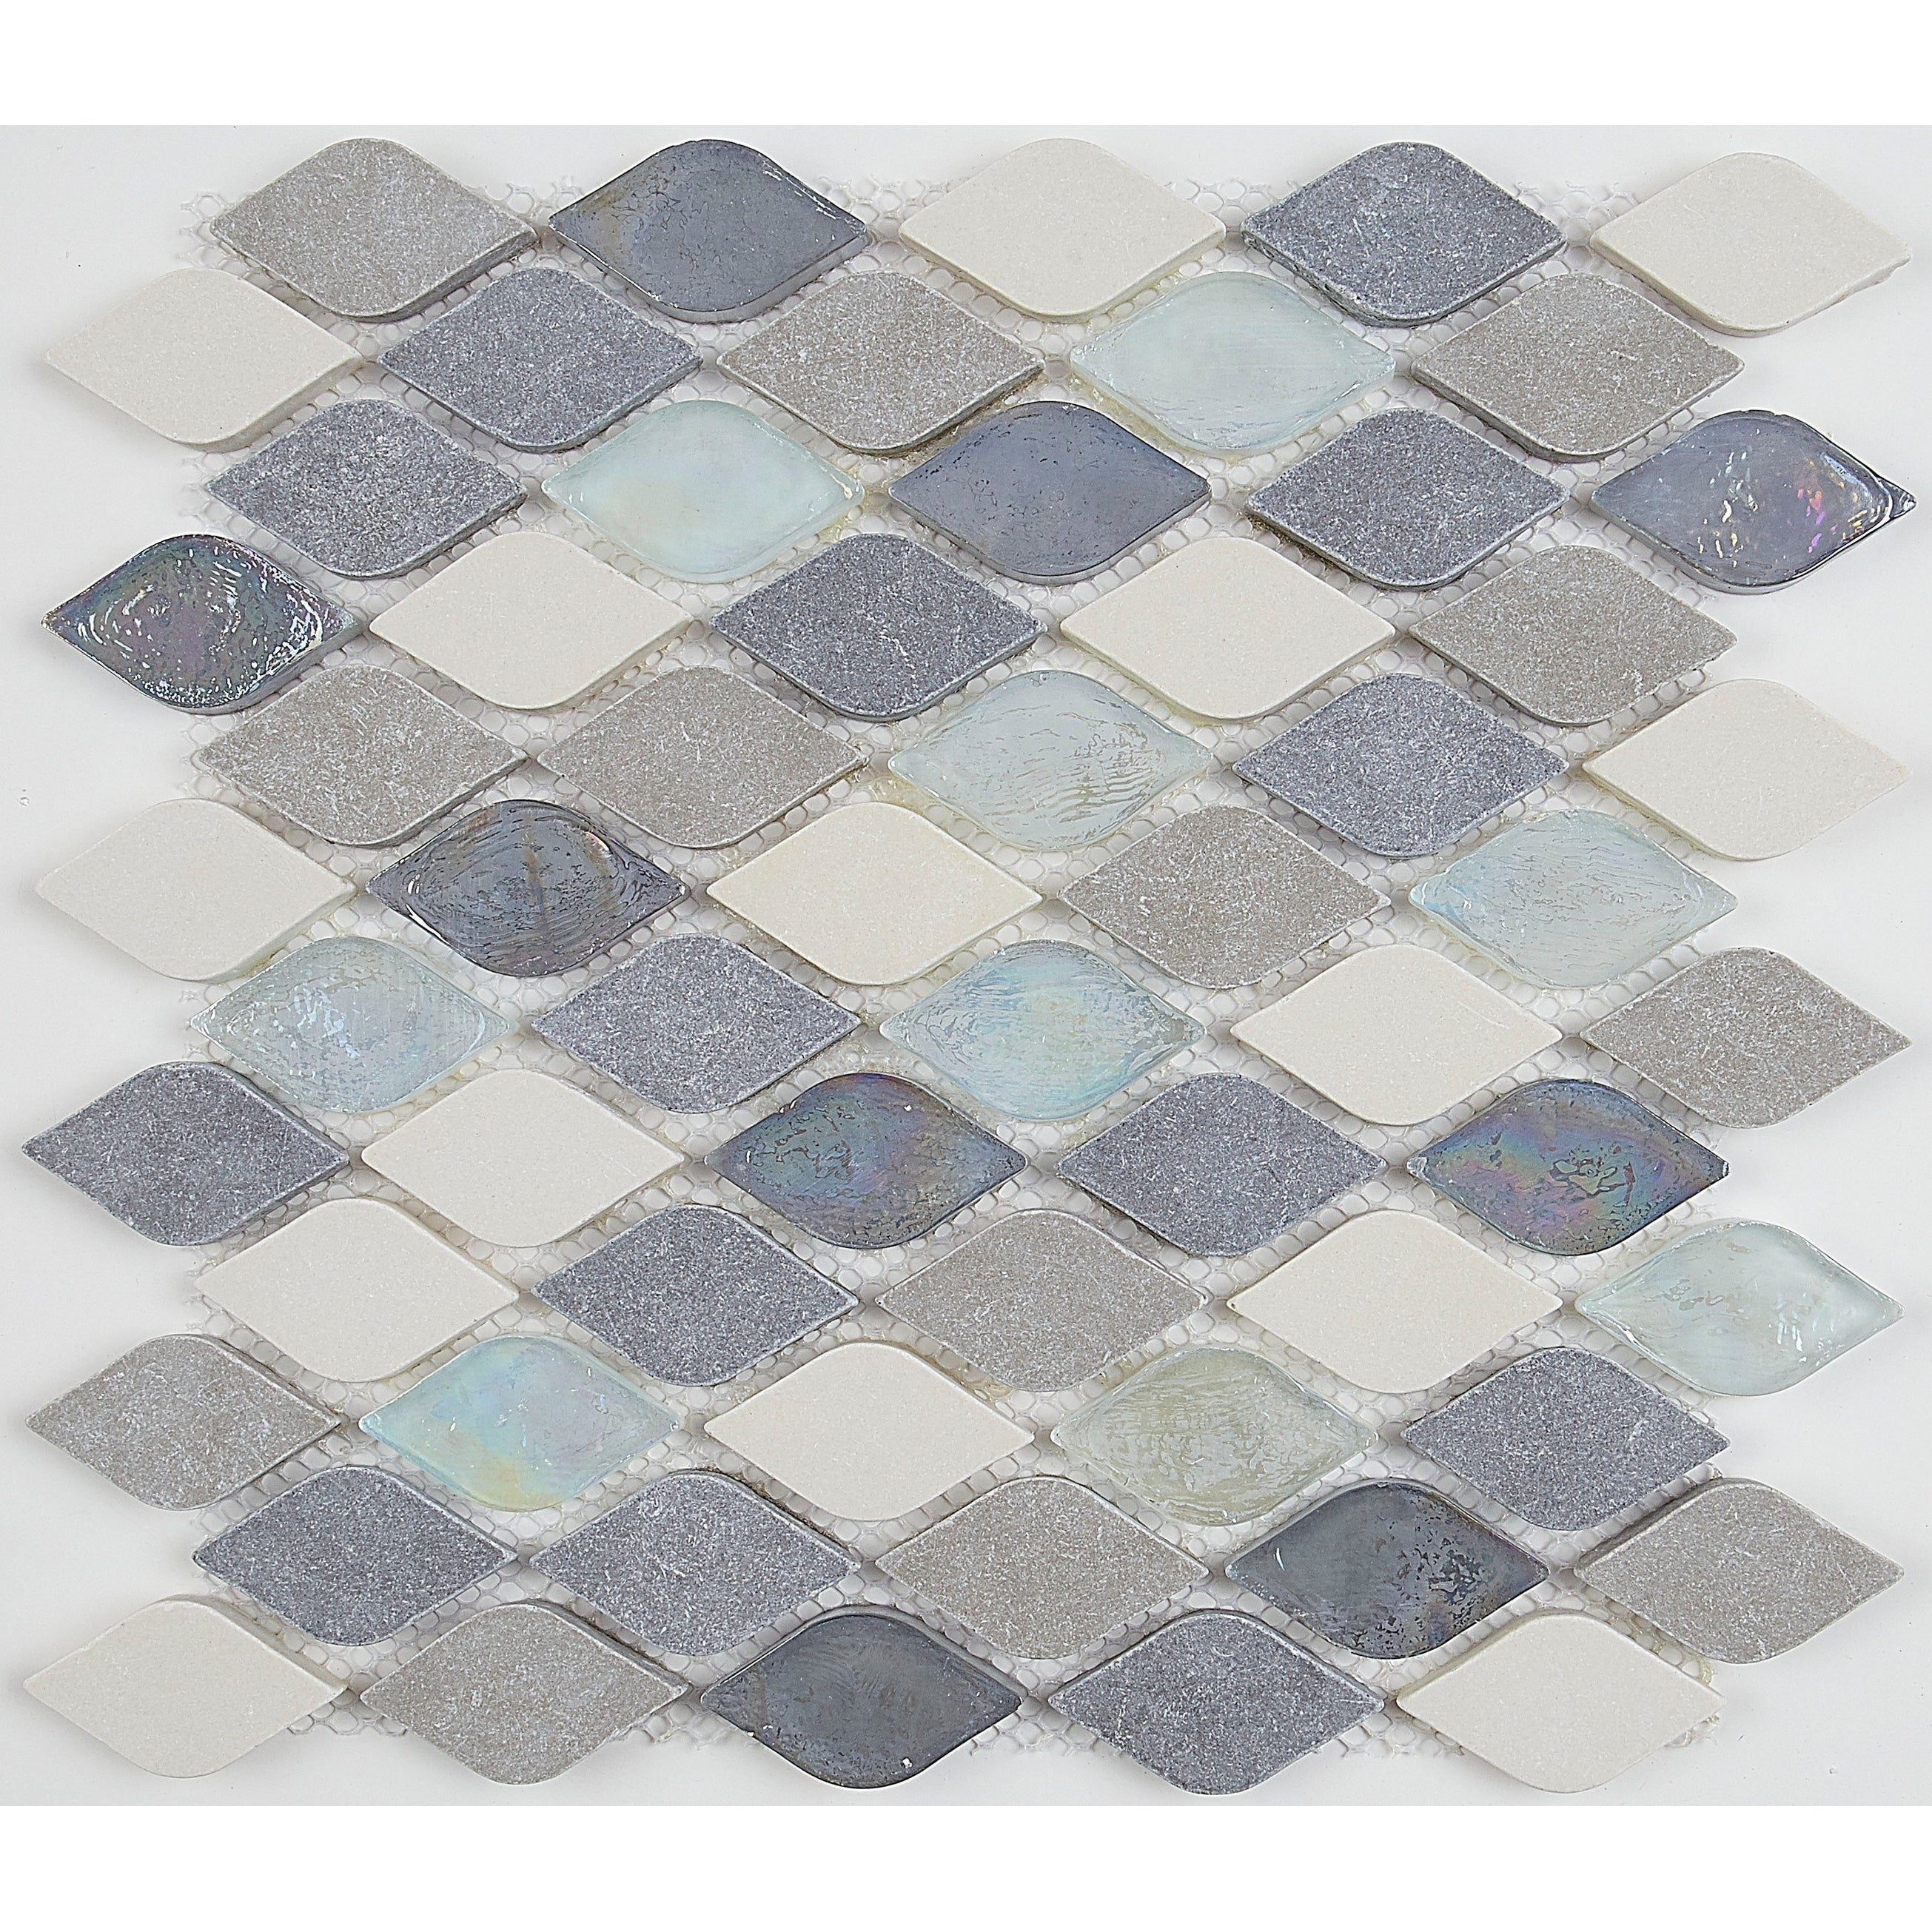 Decorative Accent Rain Drop Stone And Glass Mosaic Tile In Gris Et Blanc 12x13 Overstock 20774186